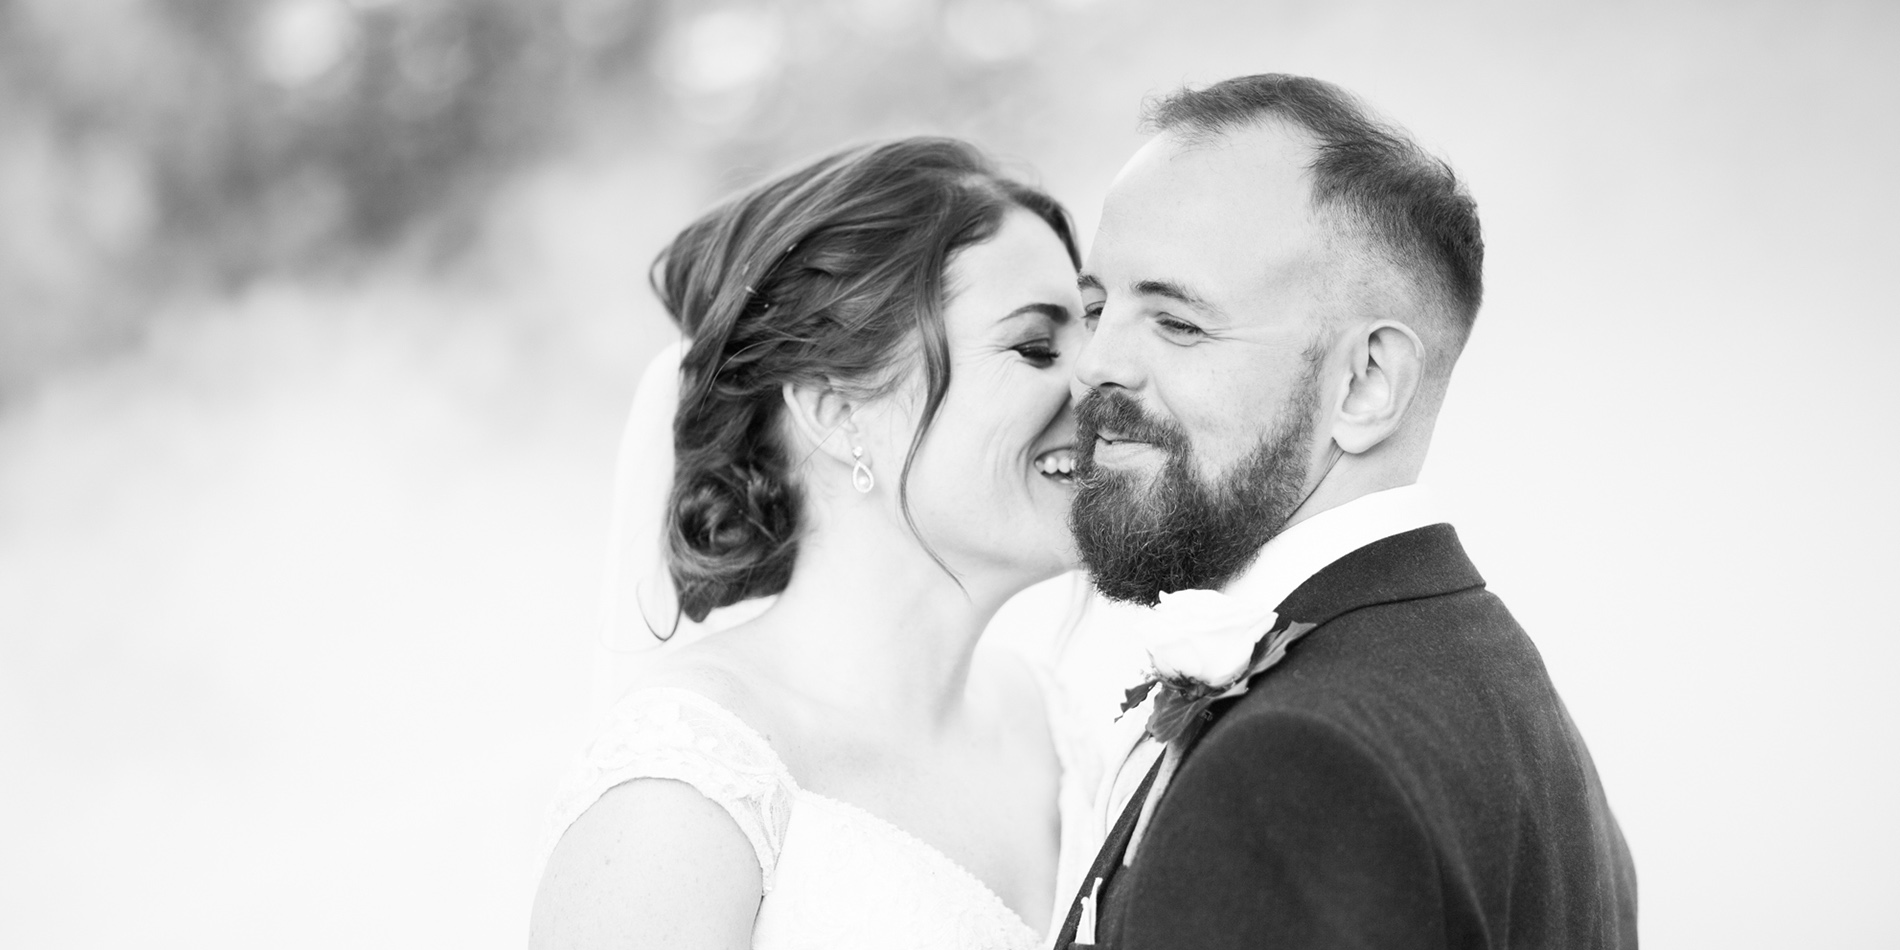 The happy newlyweds share a moment at their wedding at Morden Hall in London